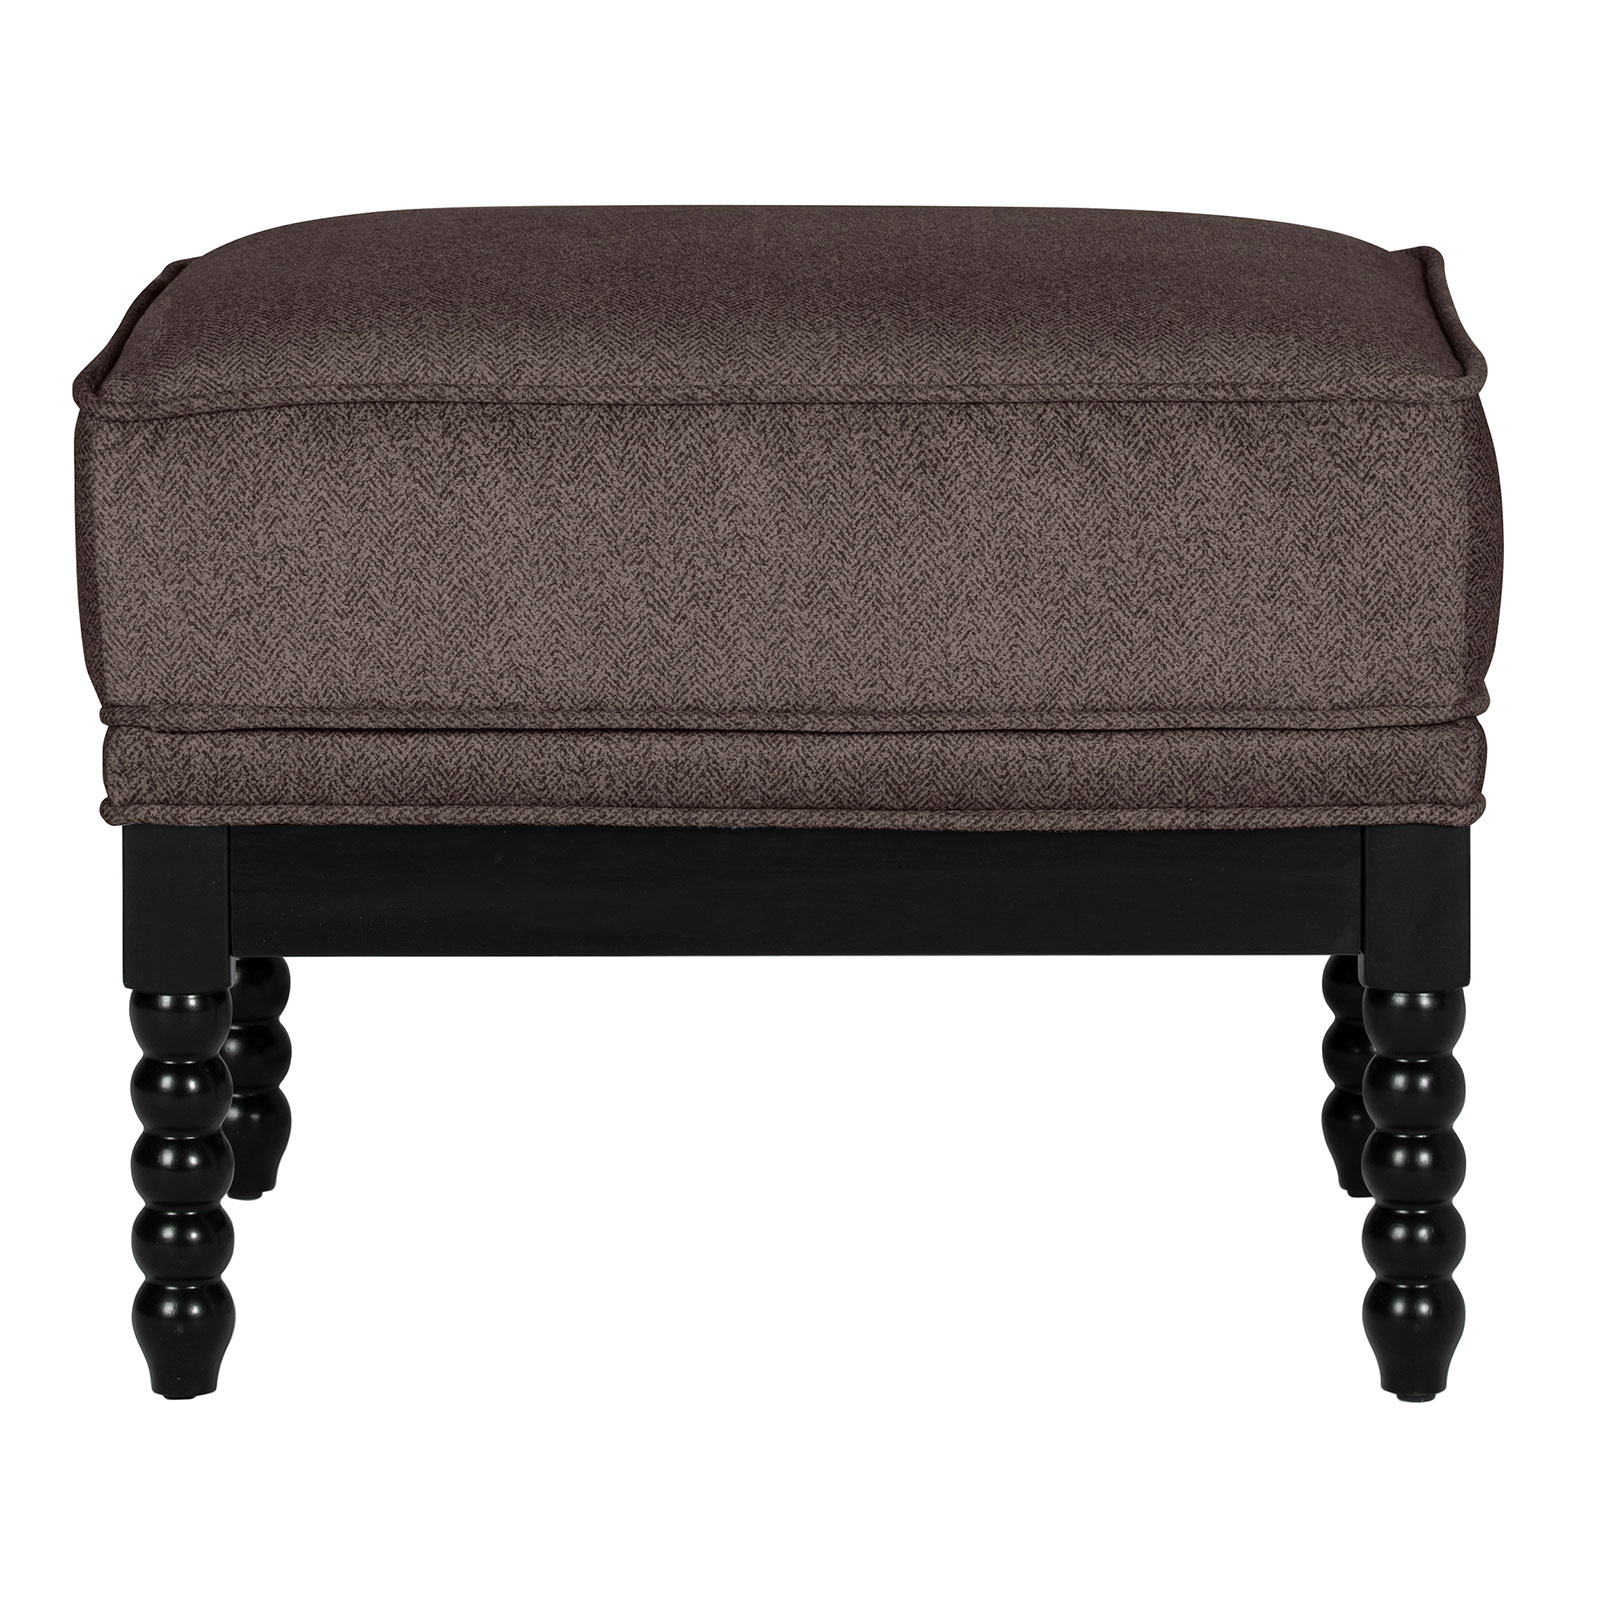 72038-Colonnade-Spindle-Ottoman-front